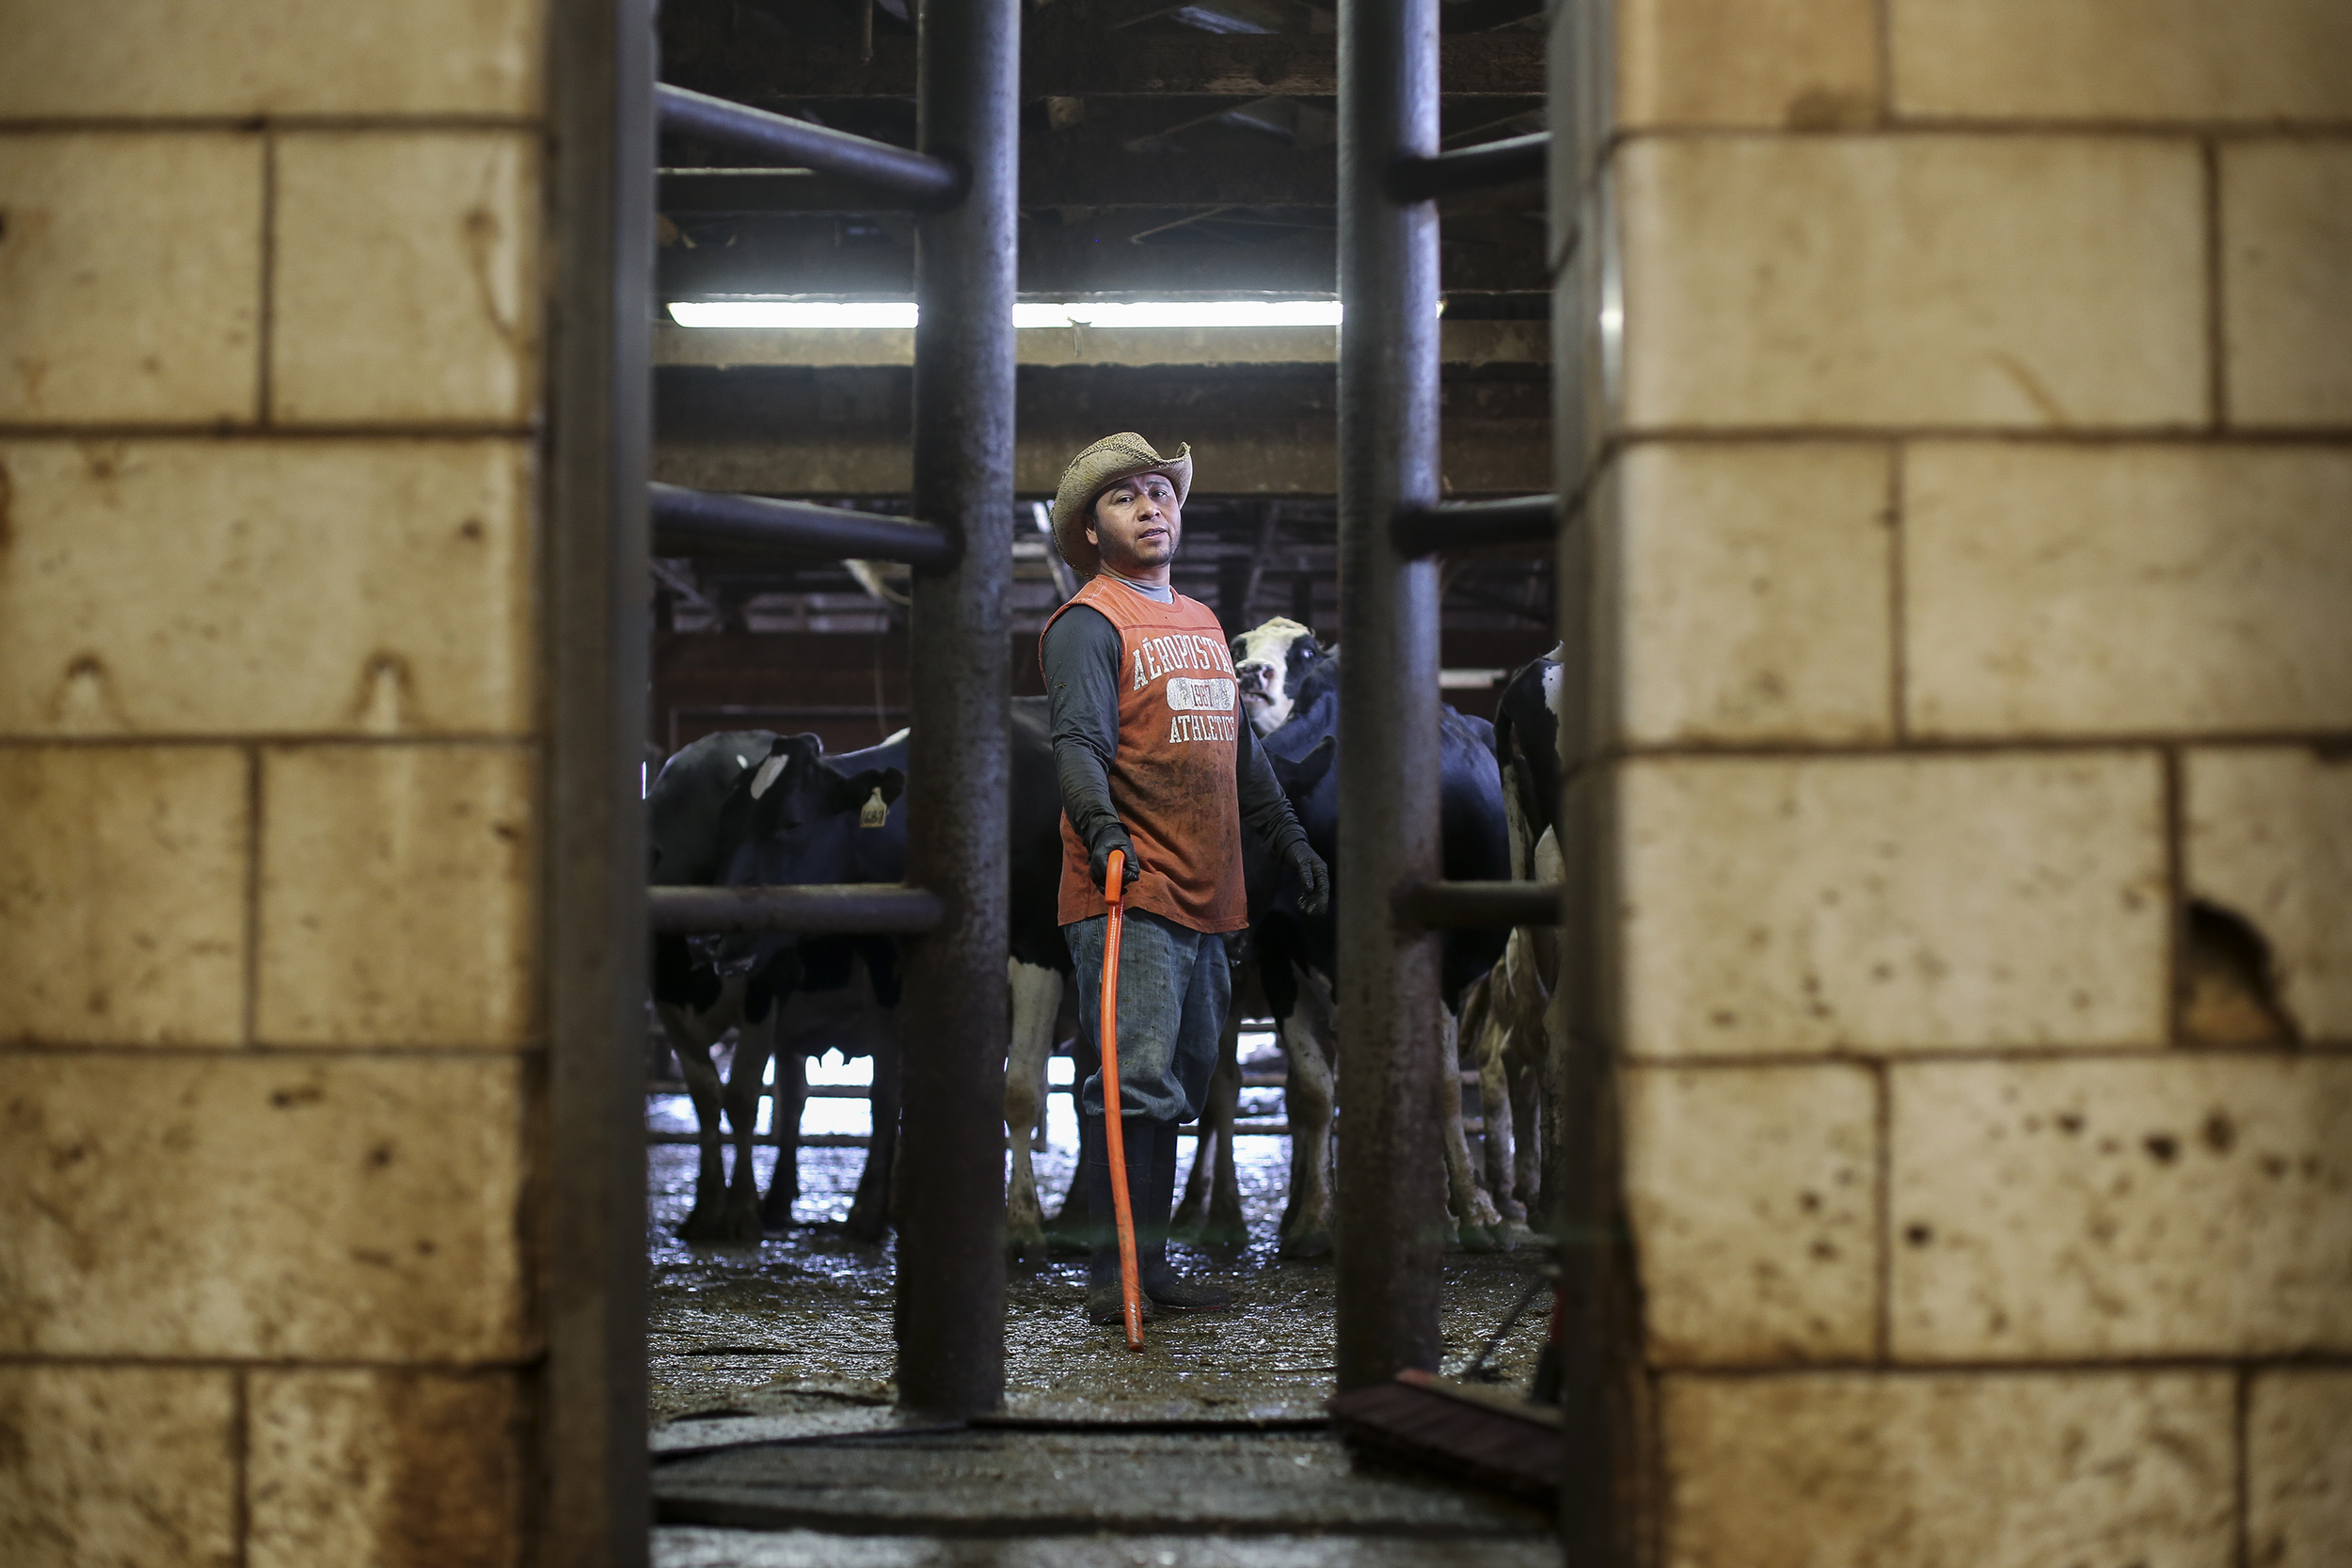 """Alberto yells from the cow holding pen asking Victor how many more cows they need for the twenty station parlor. While at home he explained that his father is a surgeon in Salina Cruz, Mexico. """"I send my parents $1,200 every time I get paid. We make three times as much money here in America than we did in Mexico, but things are more expensive here. I work more hours here but I am happy, I sing all the time, even if I'm not good at it,"""" he said."""